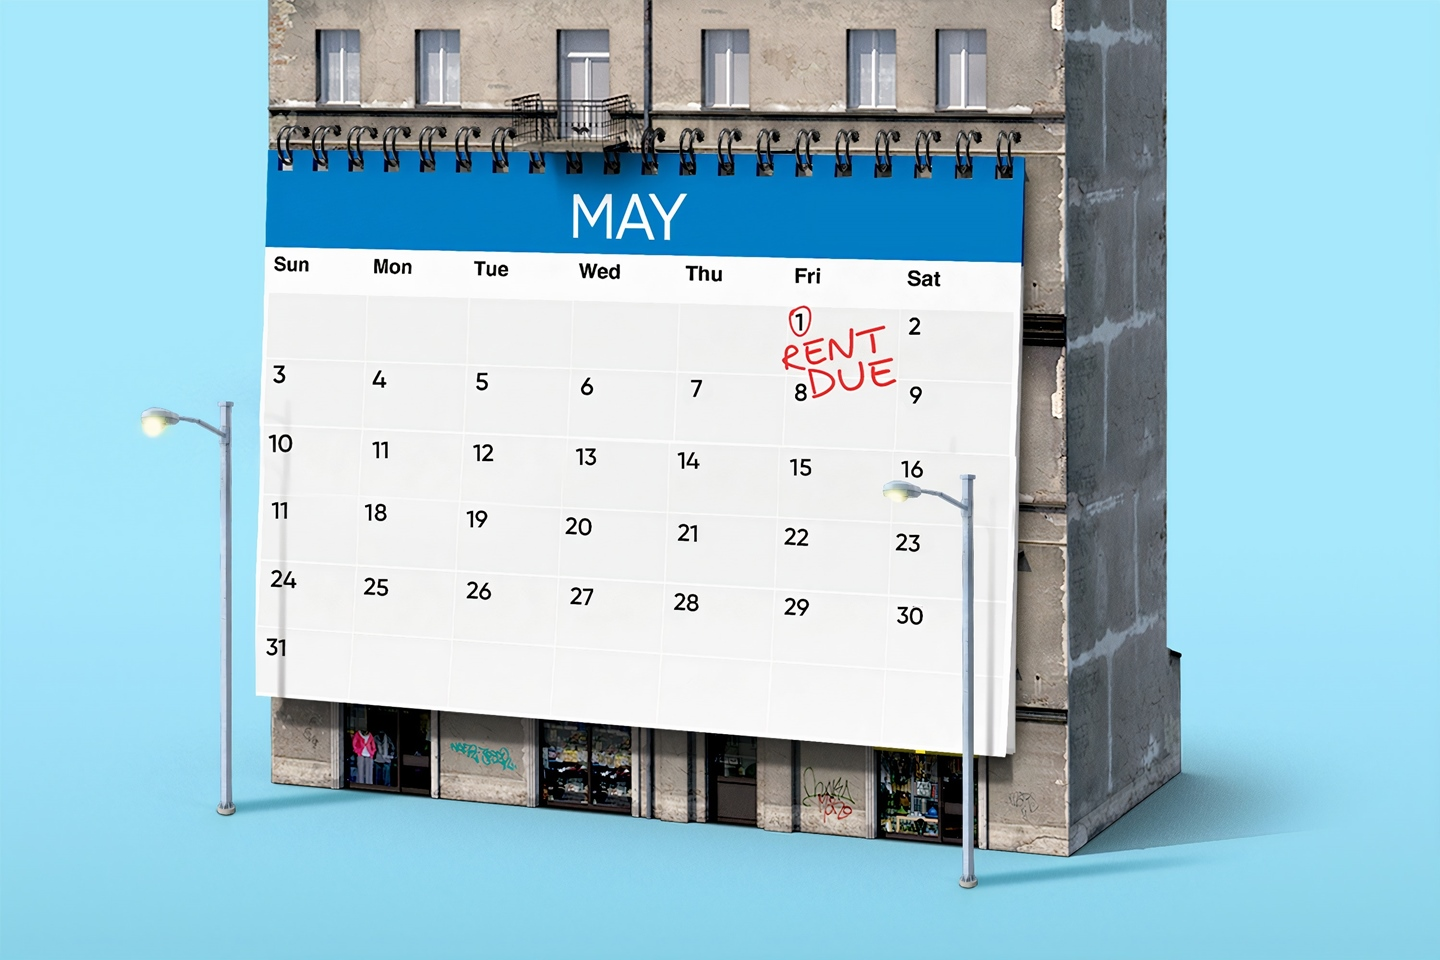 A picture of calendar on a building surface